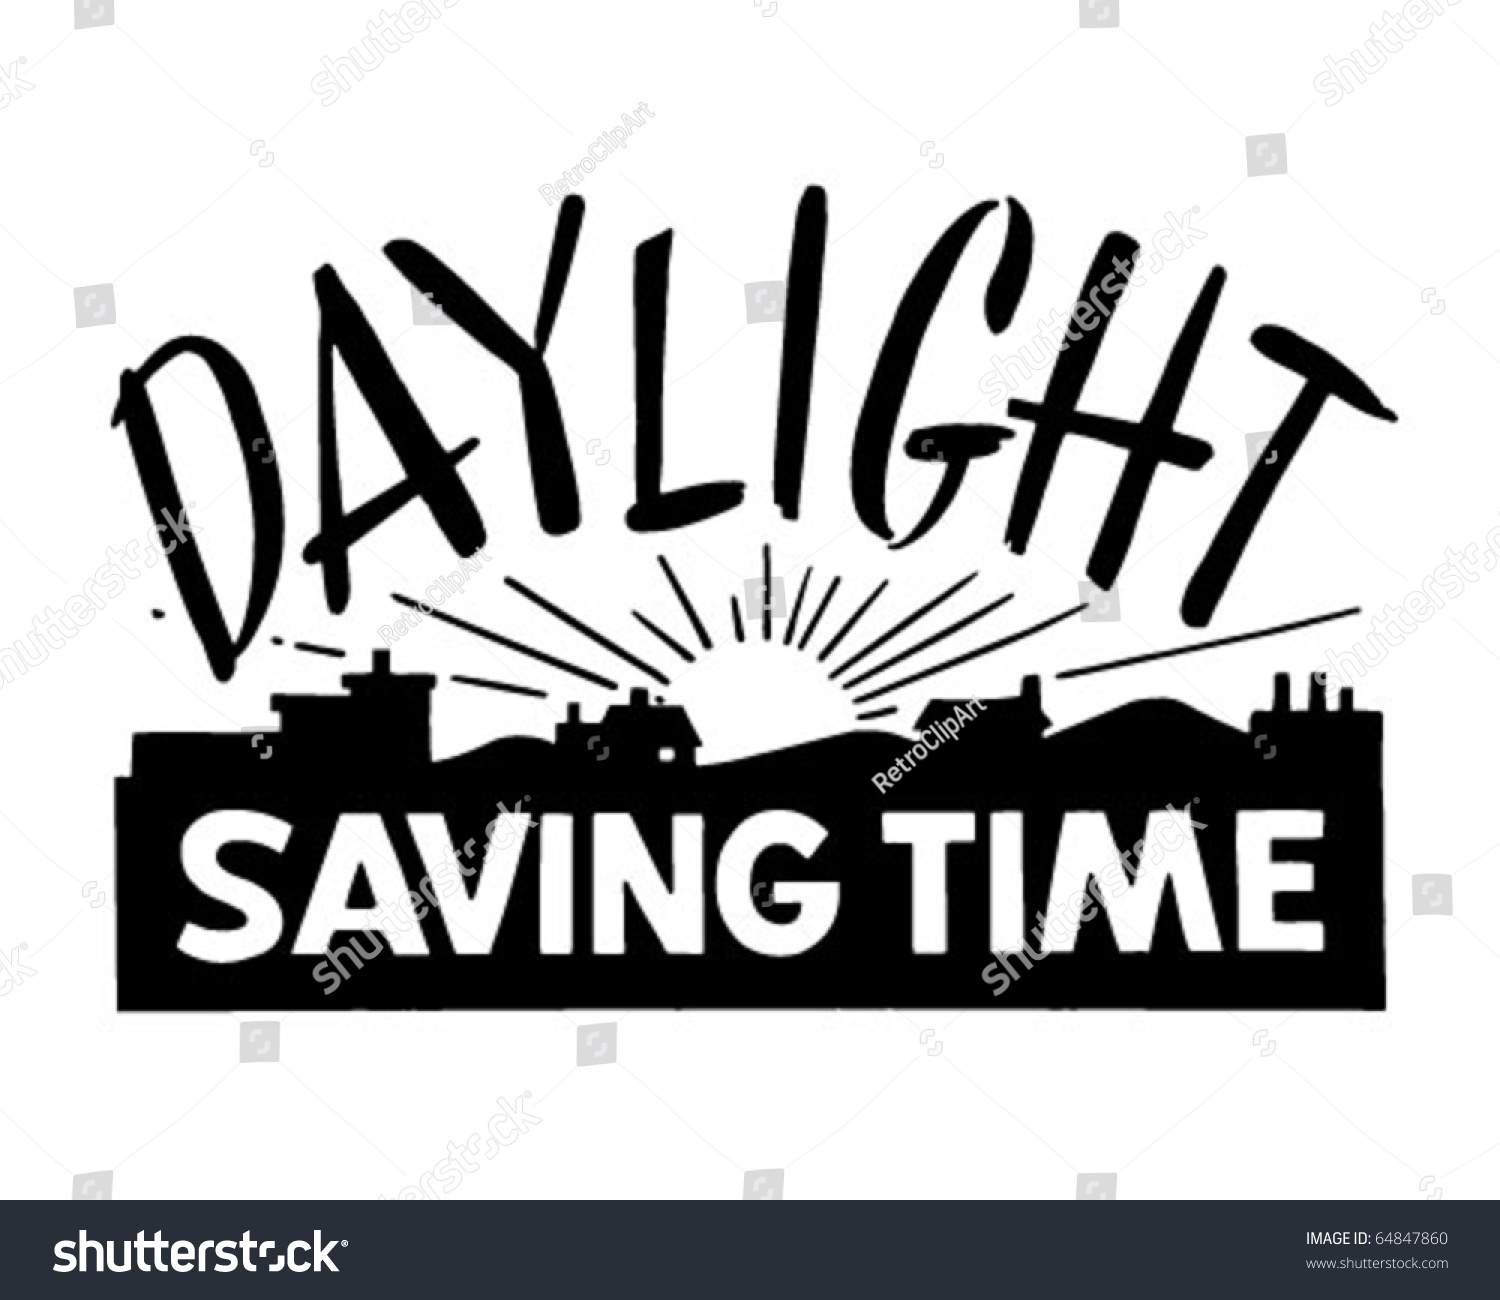 daylight saving time ad banner retro stock vector 64847860 daylight savings clip art images daylight savings clip art religious free